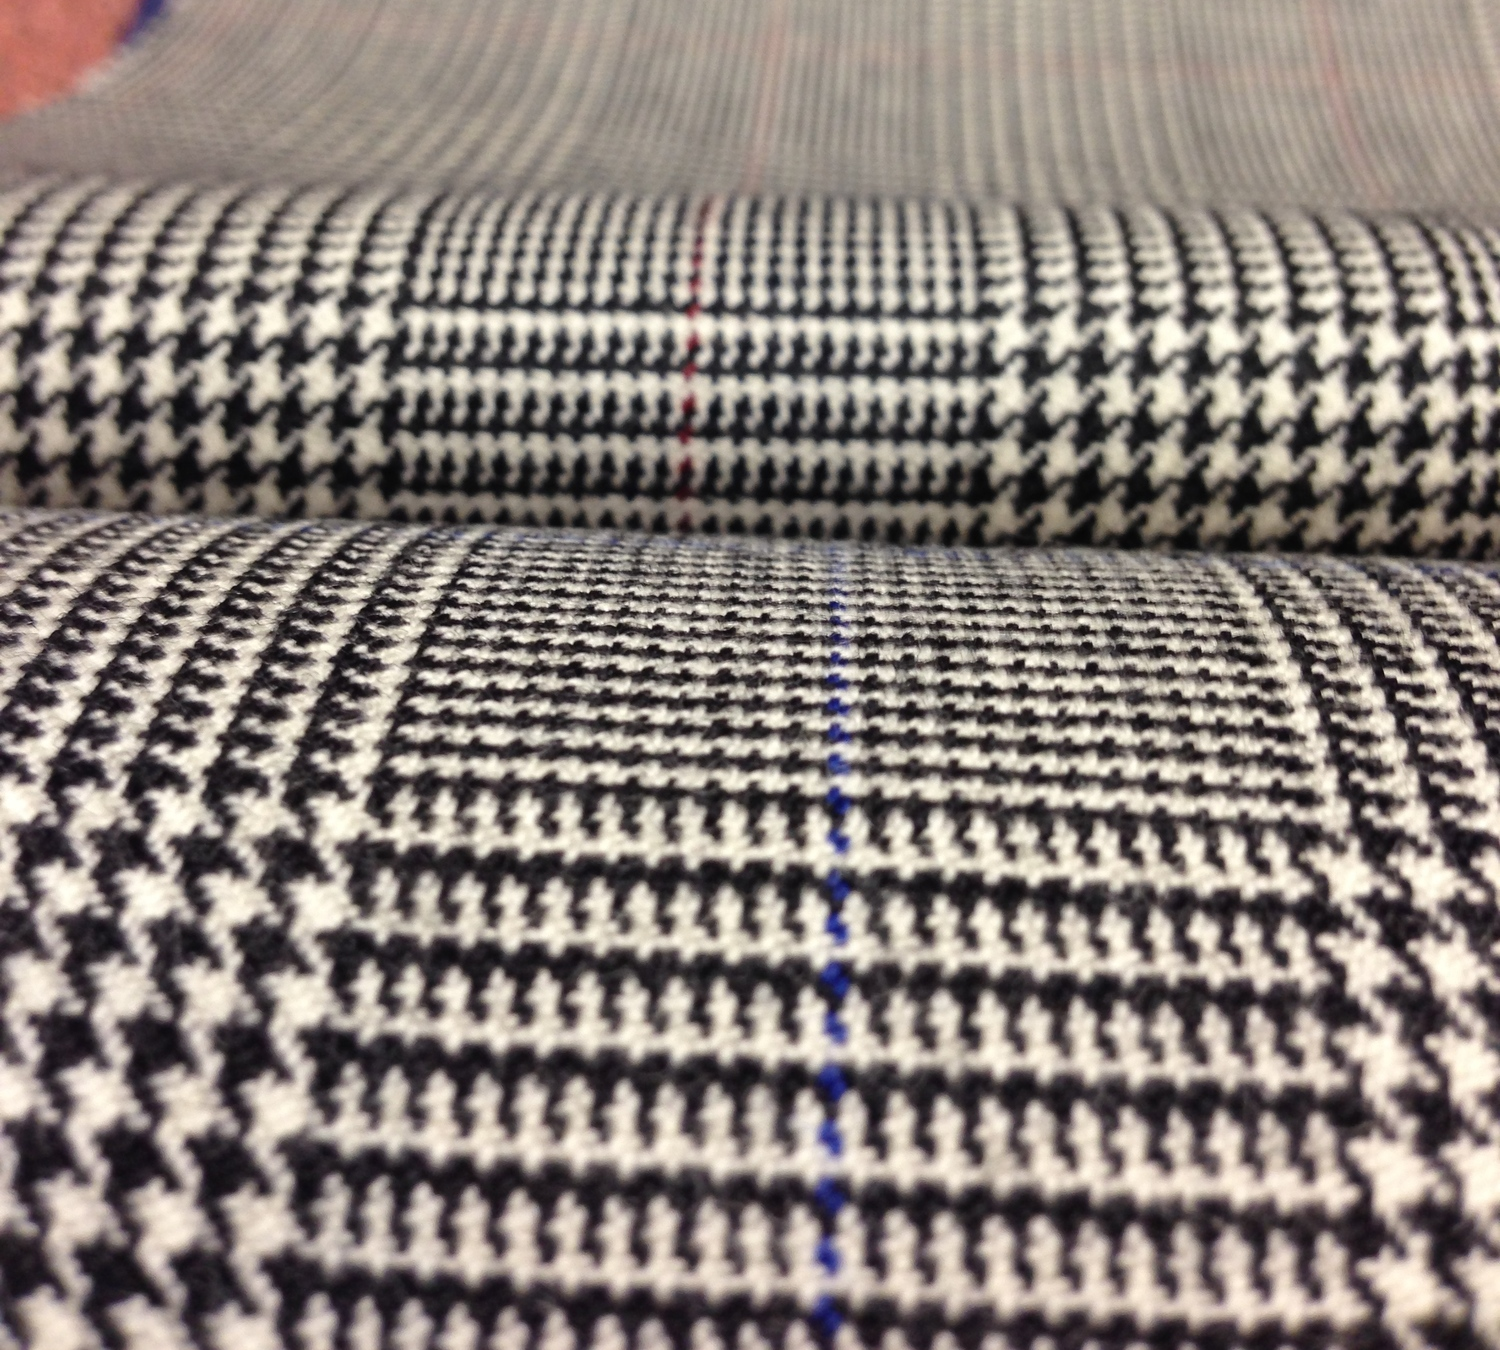 The Prince of Wales fabric - selected from the book at Copperfield tailors